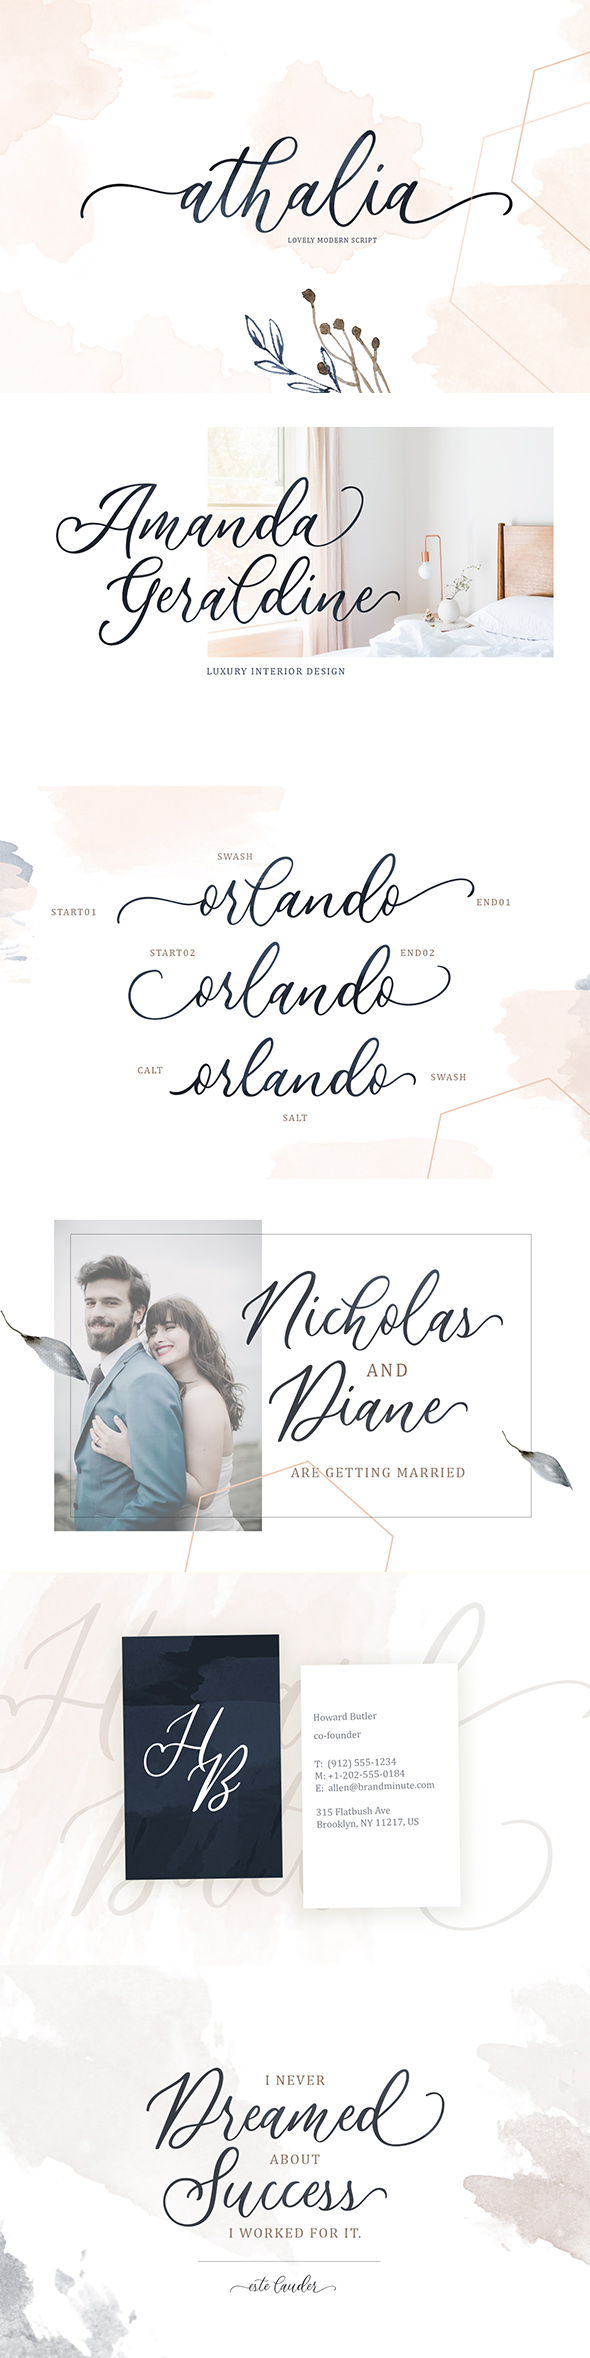 Athalia - Modern Calligraphy Script - Script Fonts